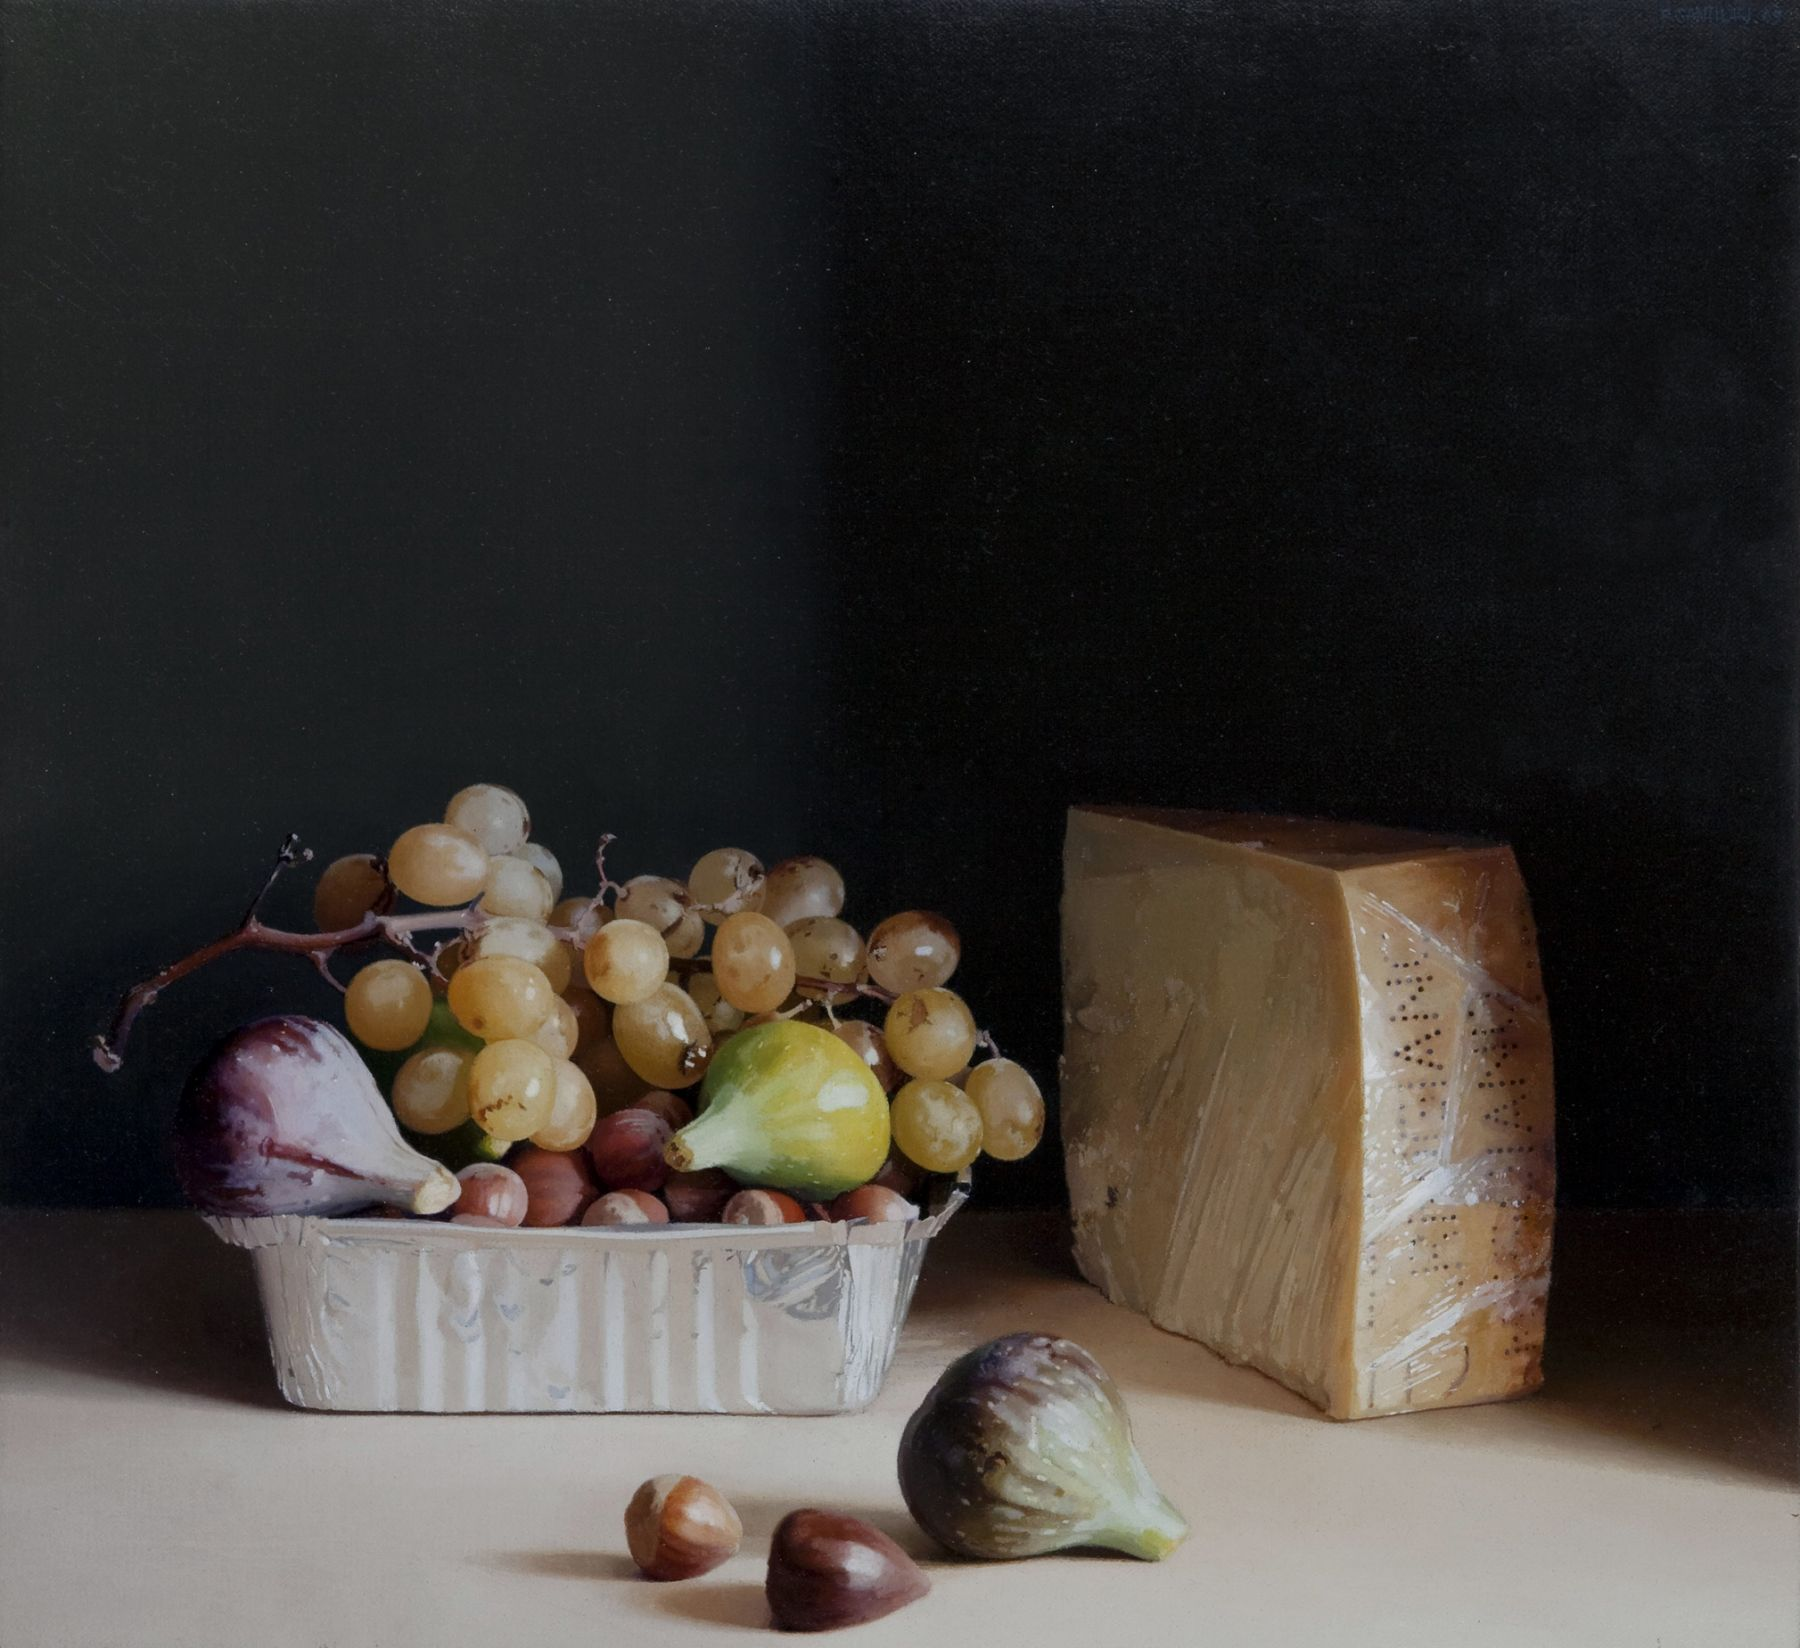 Pere Santilari Perarnau    Still Life XX, 2009    Oil on canvas 15 × 16 1/8 inches